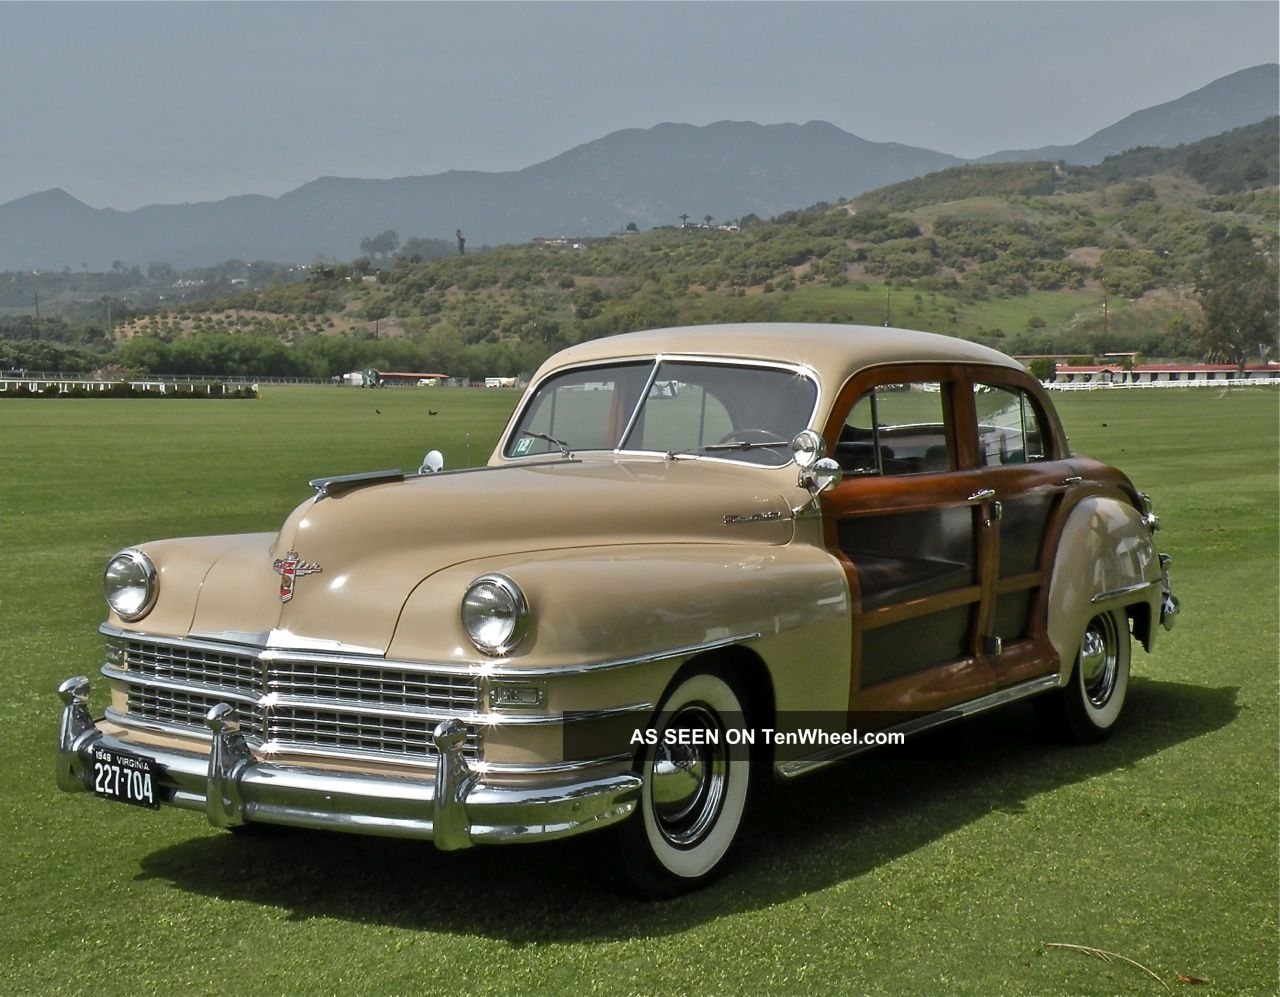 1948 Chrysler Town & Country Woody Sedan - Extremely Unrestored Condition Town & Country photo